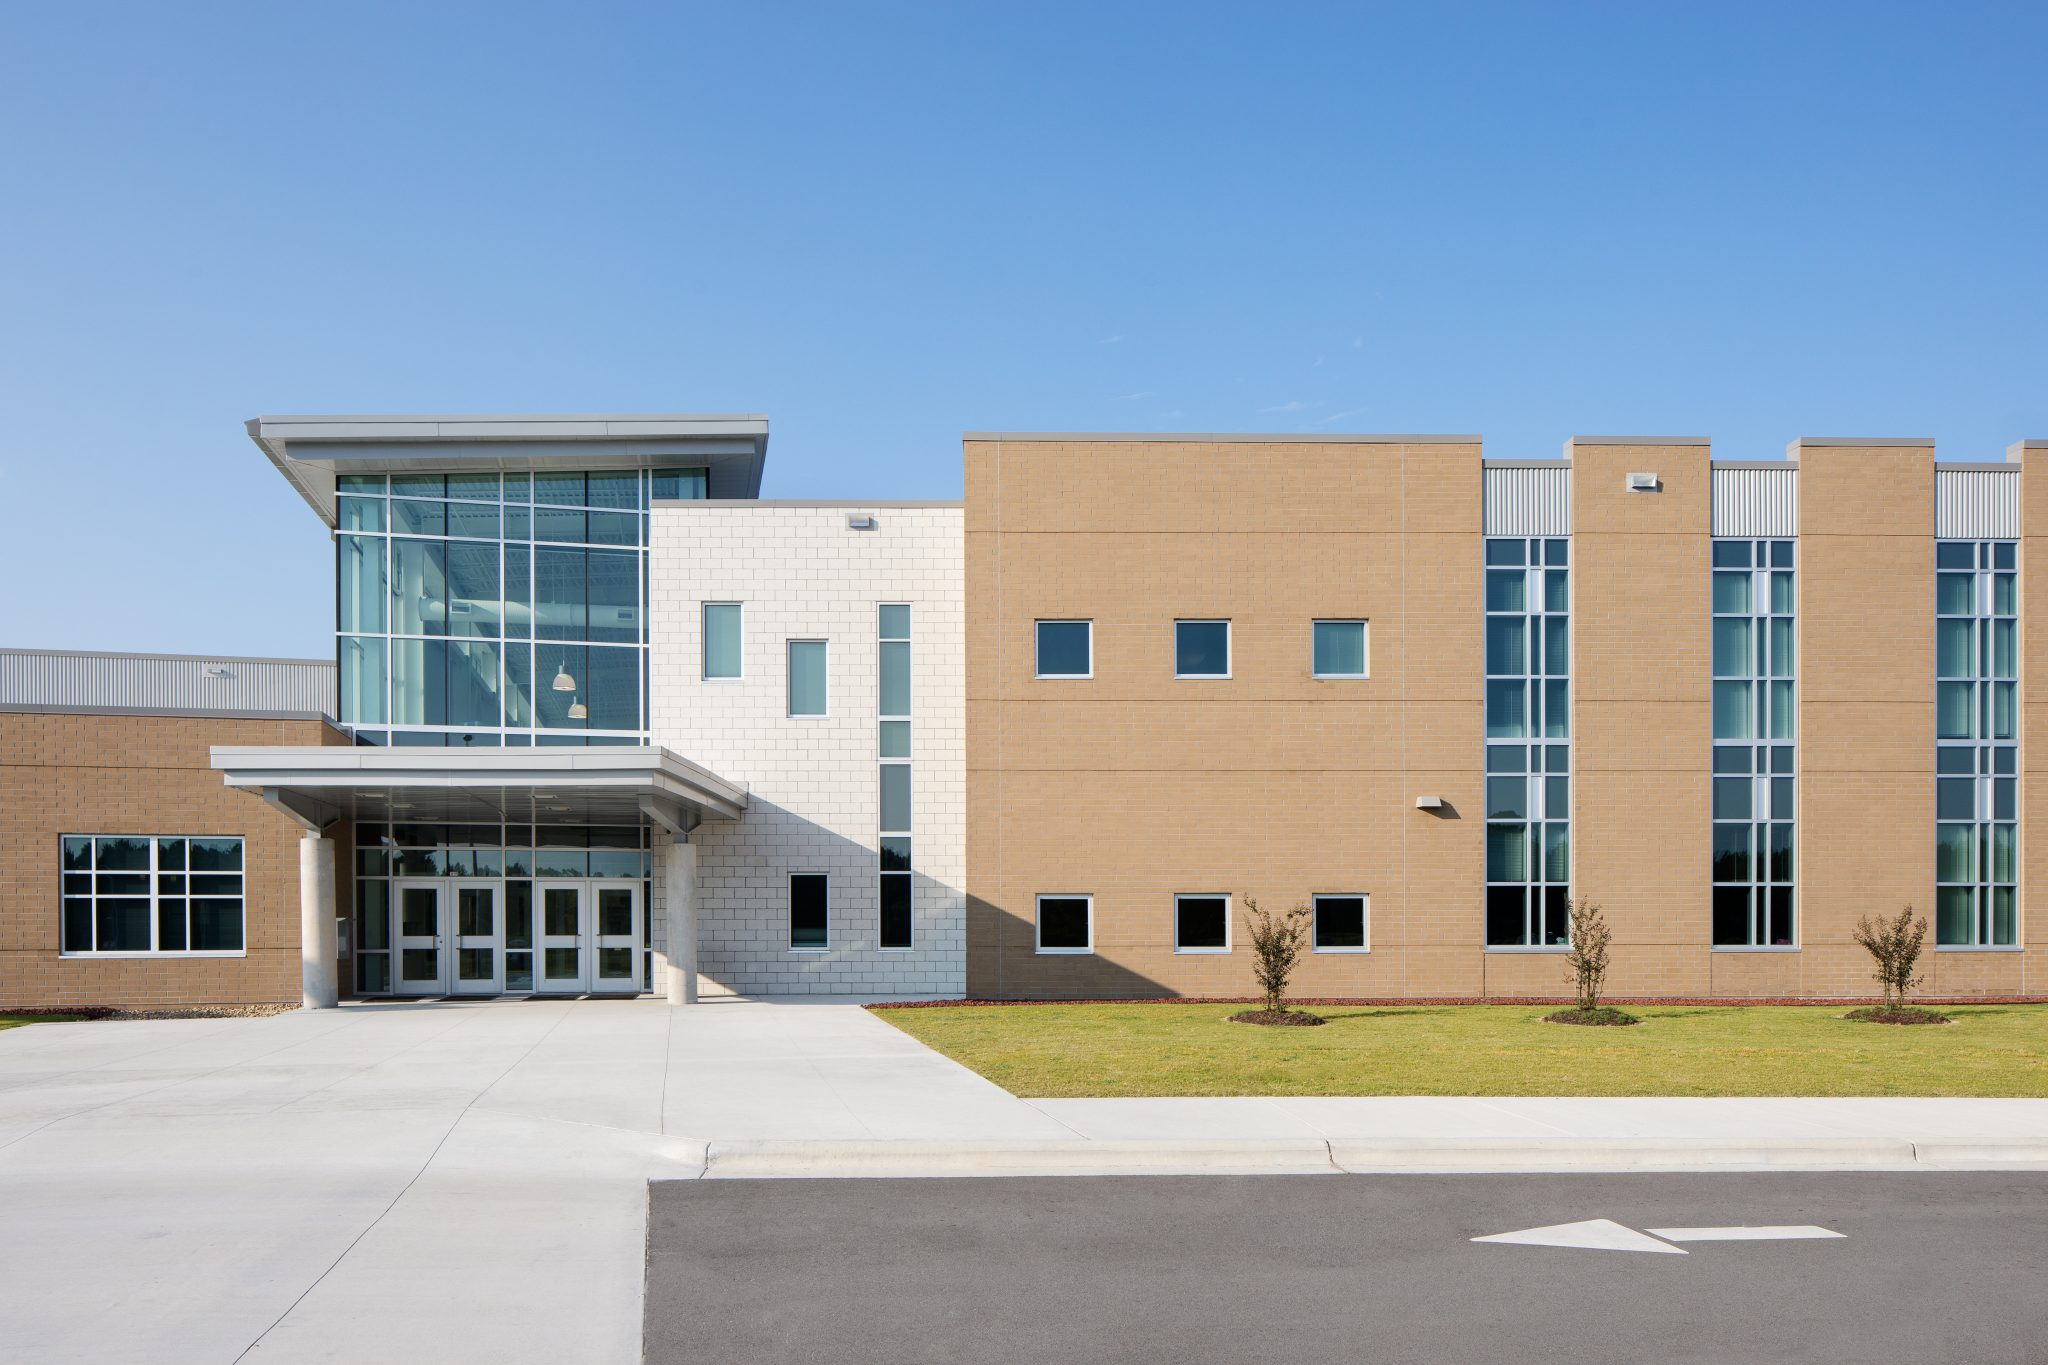 In Response To The Ambitious Project Based Curriculum, The New Dixon Middle  School Will Provide A Technology Rich Environment And Foster A Flexible  Learning ...